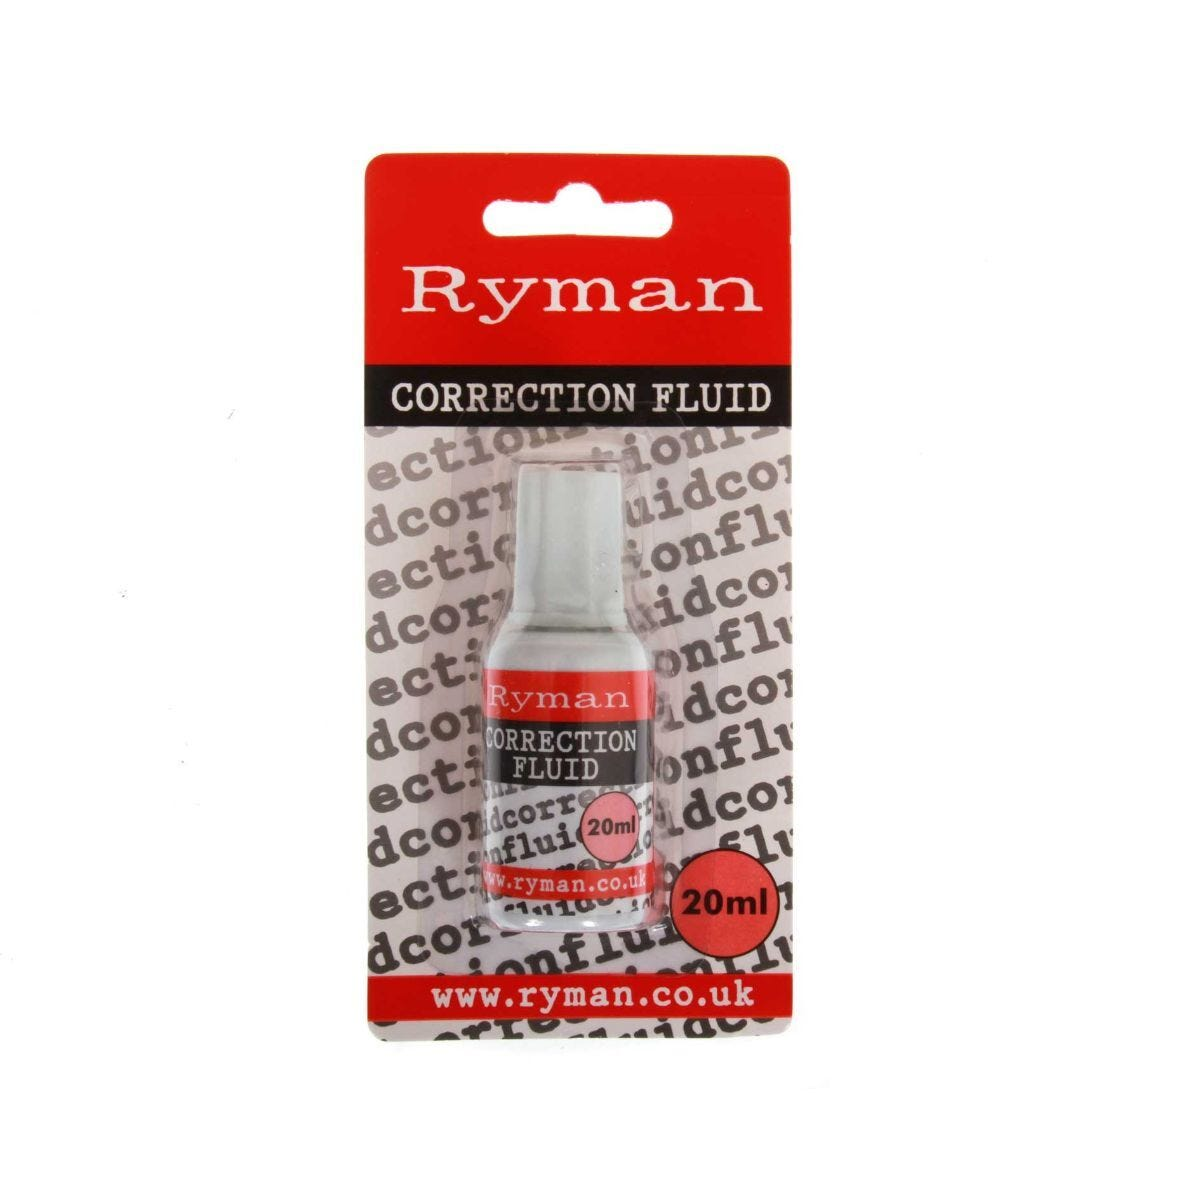 Ryman Correction Fluid 20ml Pack of 24